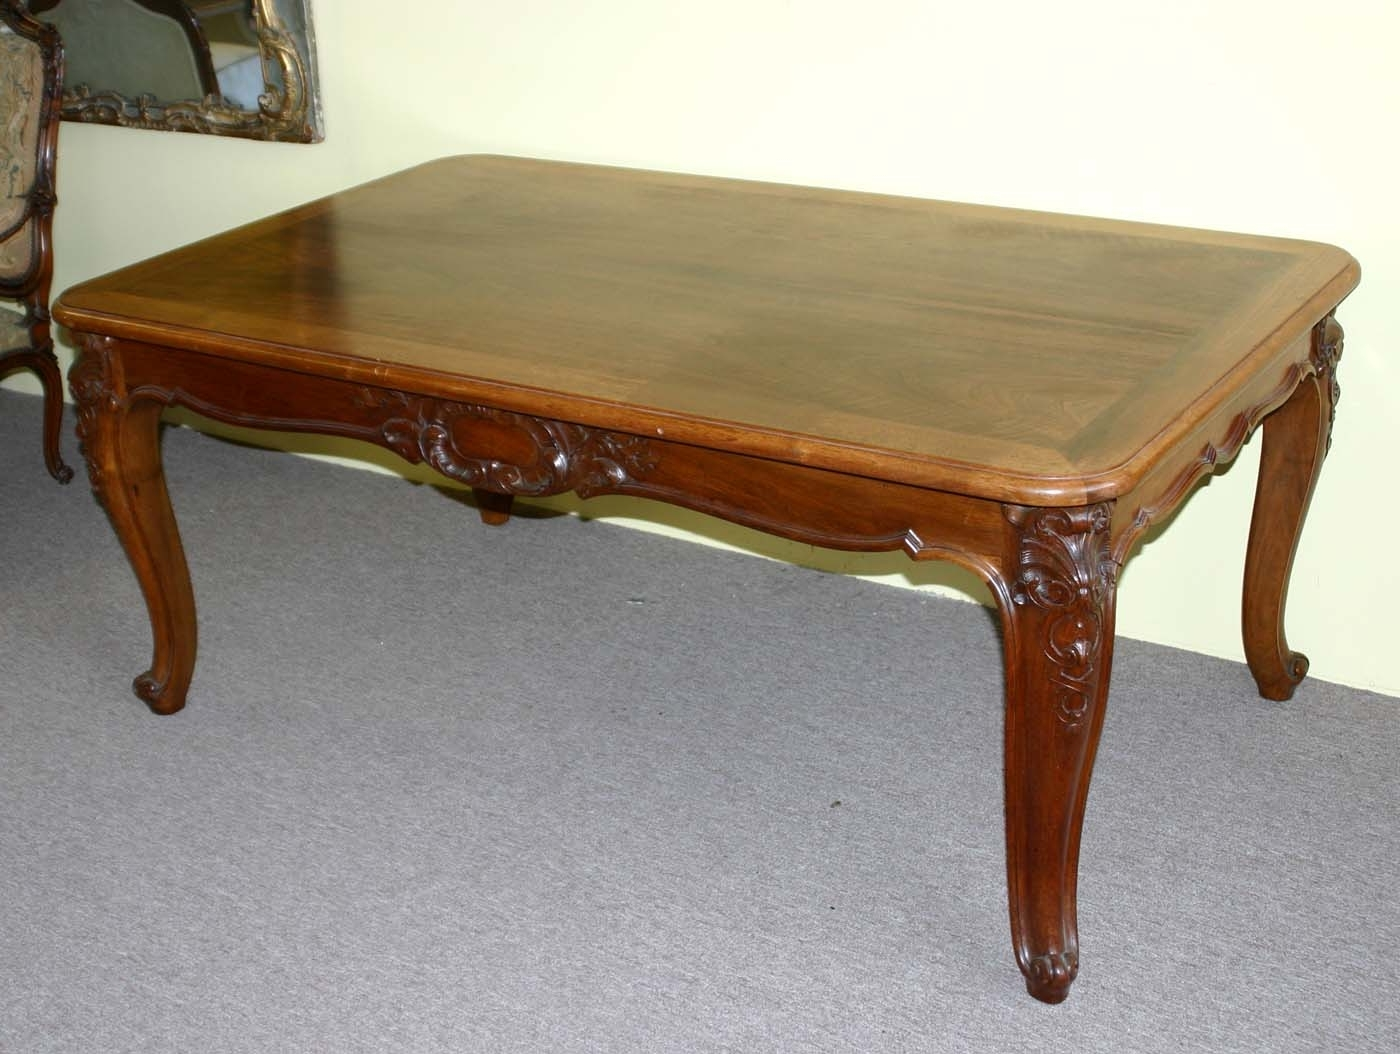 French, Louis Xv Style, Extension Dining Table Intended For Most Current French Extending Dining Tables (View 3 of 25)